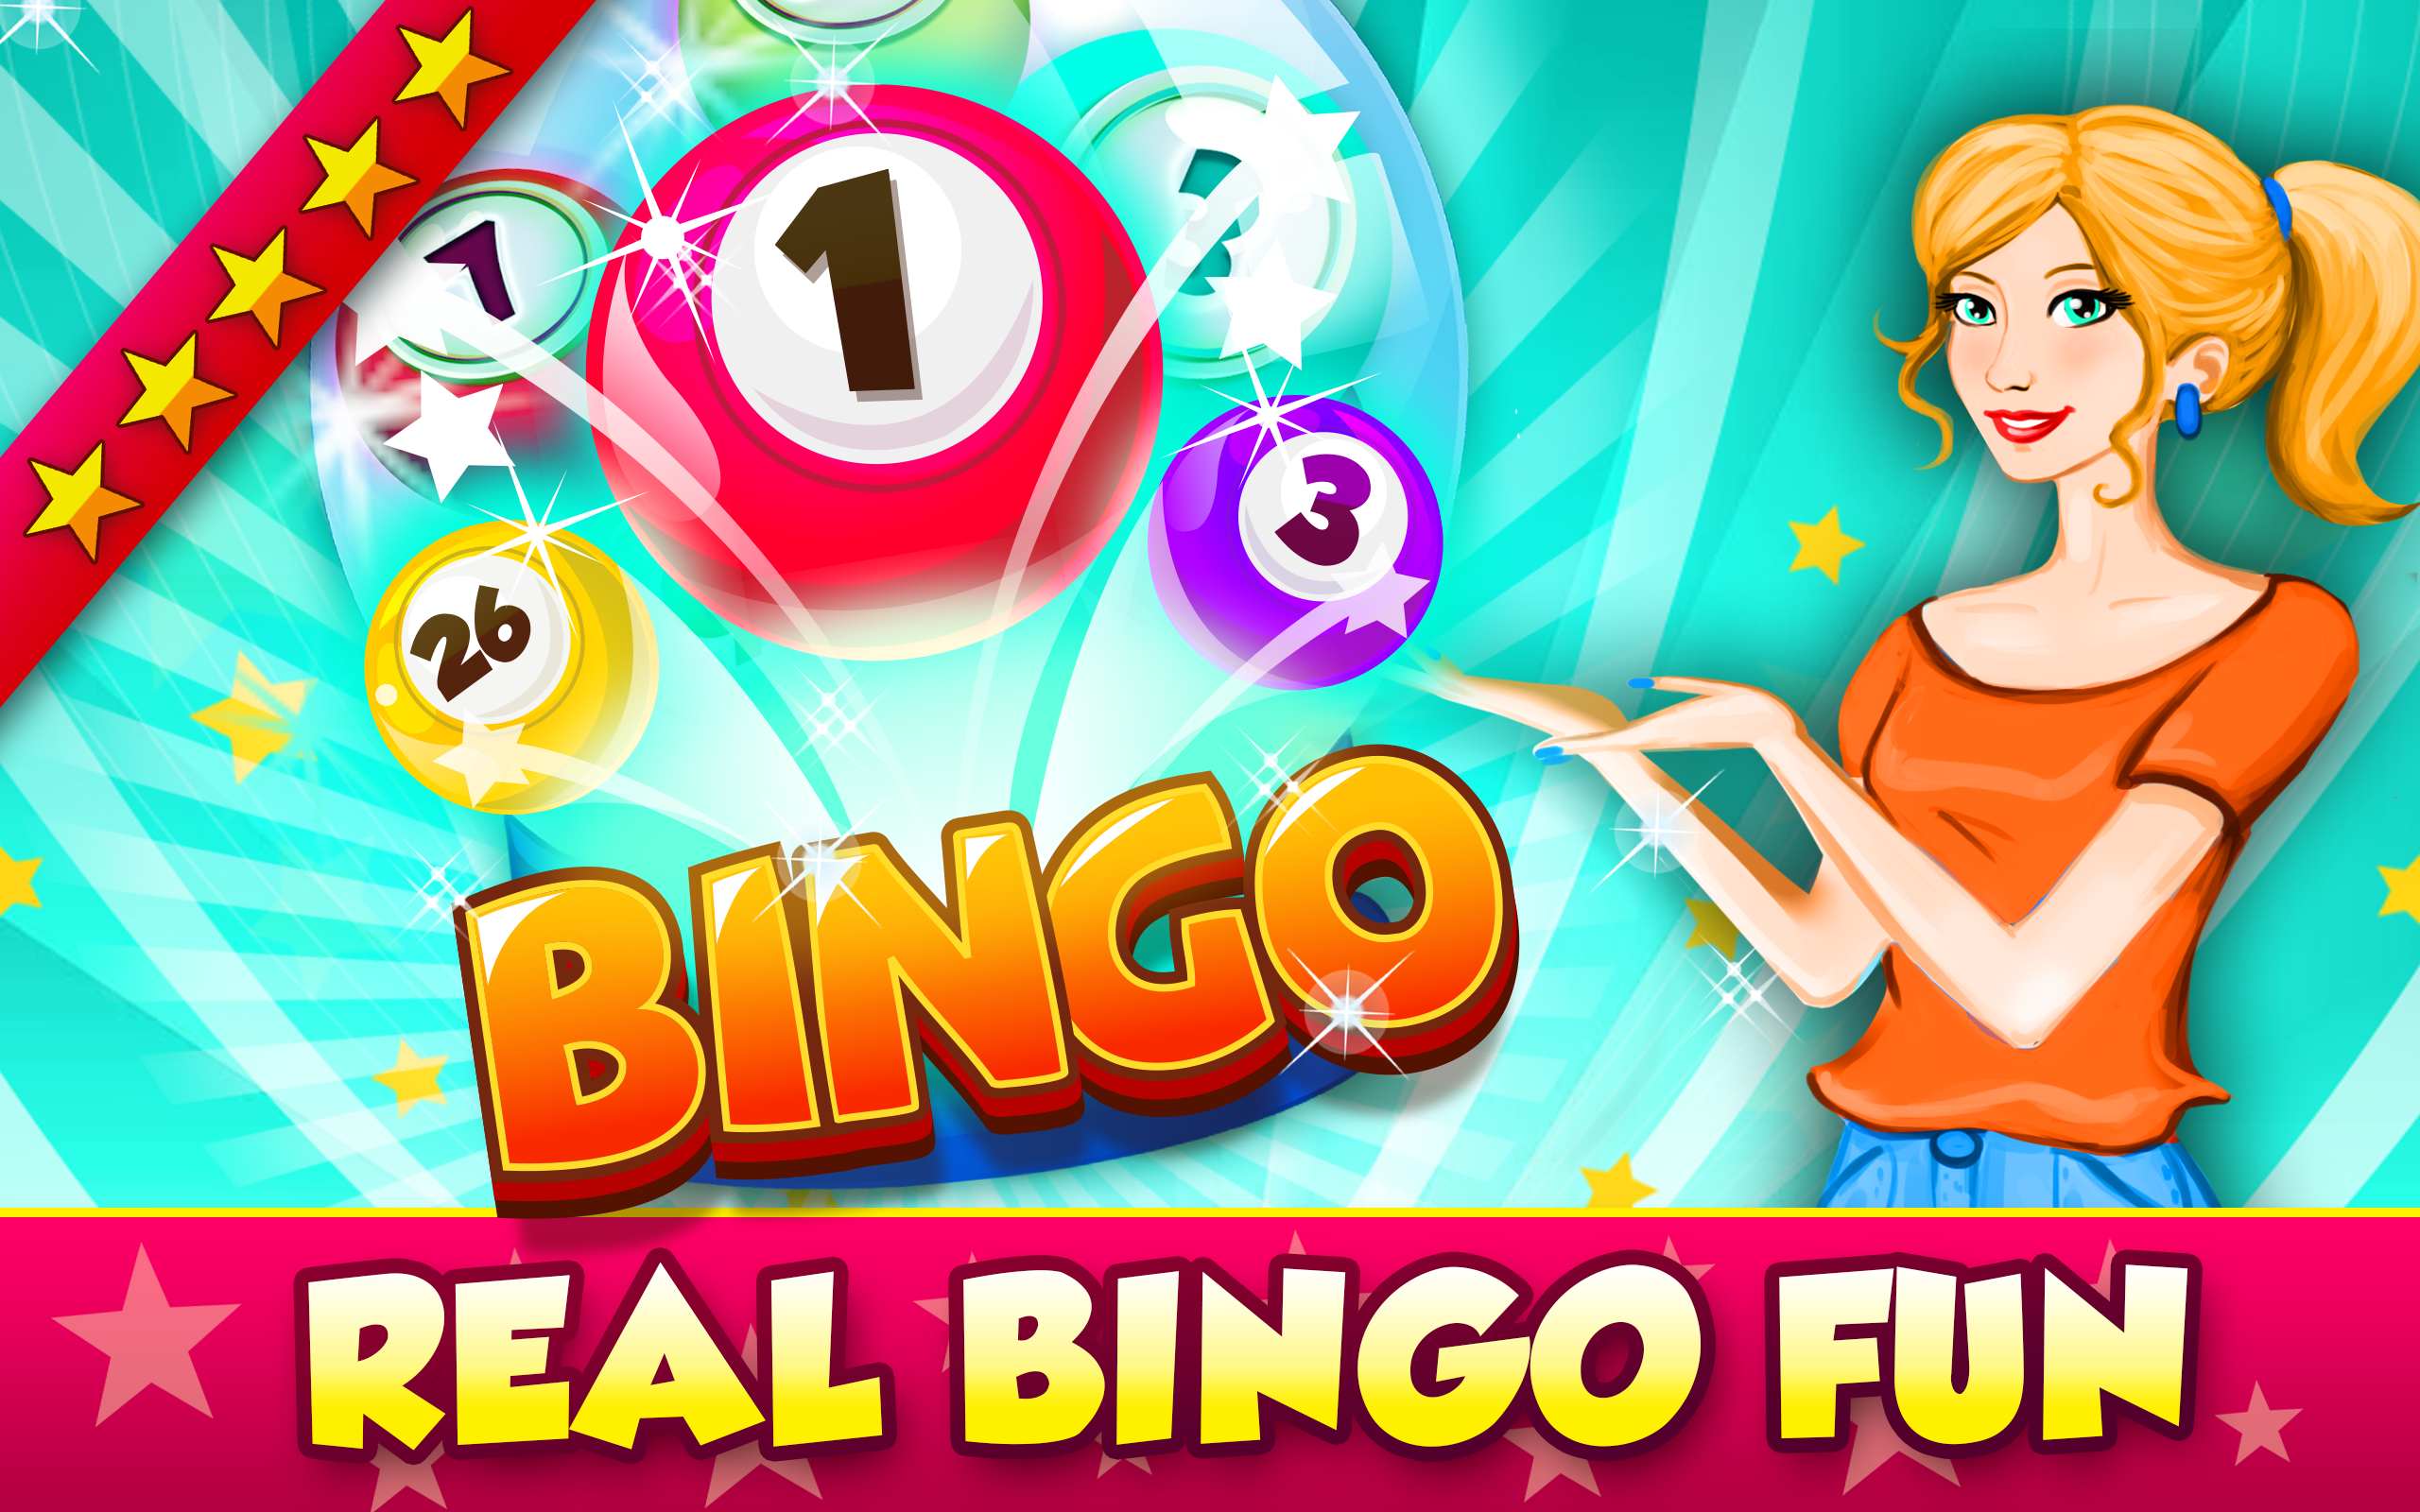 Bingo Best Online Bingo - Free to Play Online Demo Game